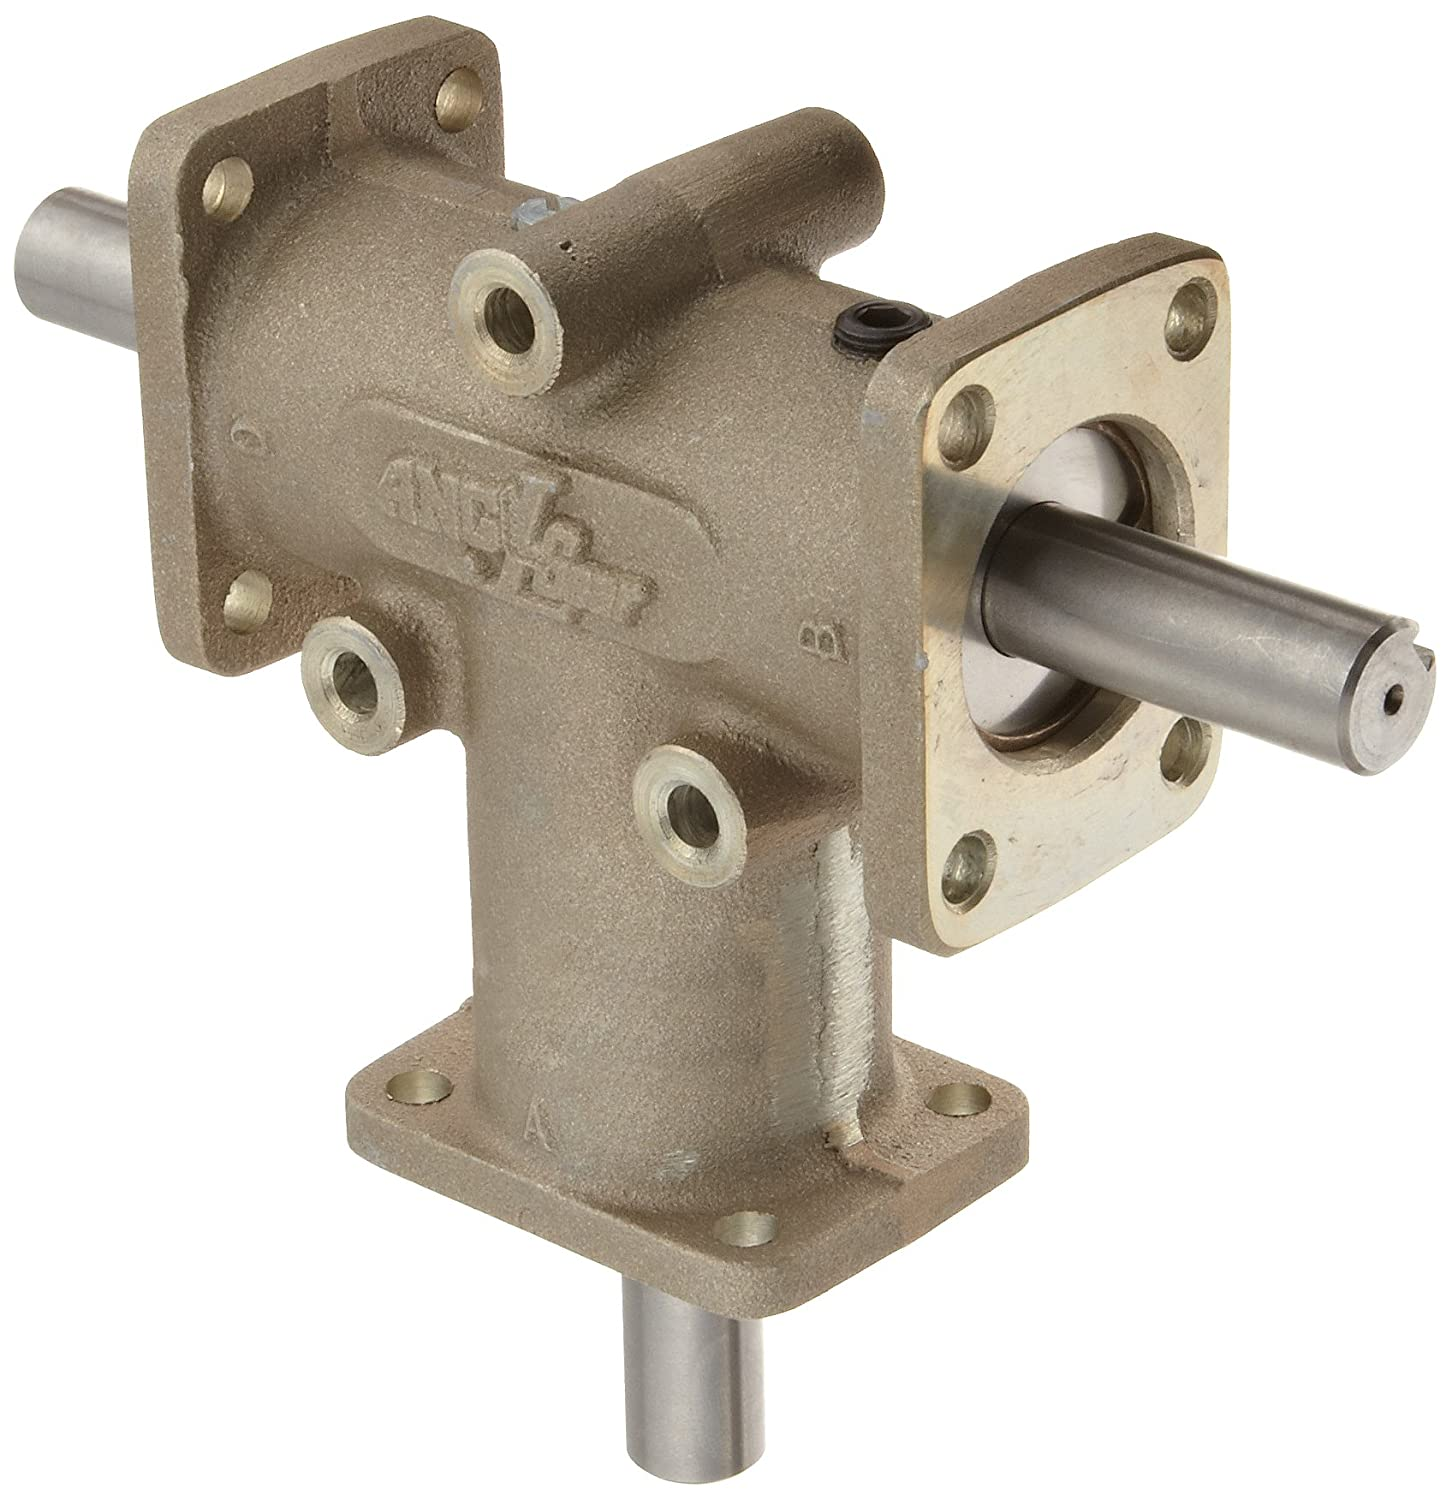 Image of Gearheads & Speed Reducers Andantex R3303 Anglgear Right Angle Bevel Gear Drive, Universal Mounting, Two Output Shafts, 3 Flanges, Inch, 5/8' Shaft Diameter, 1:1 Ratio, 1.21 Hp at 1750rpm